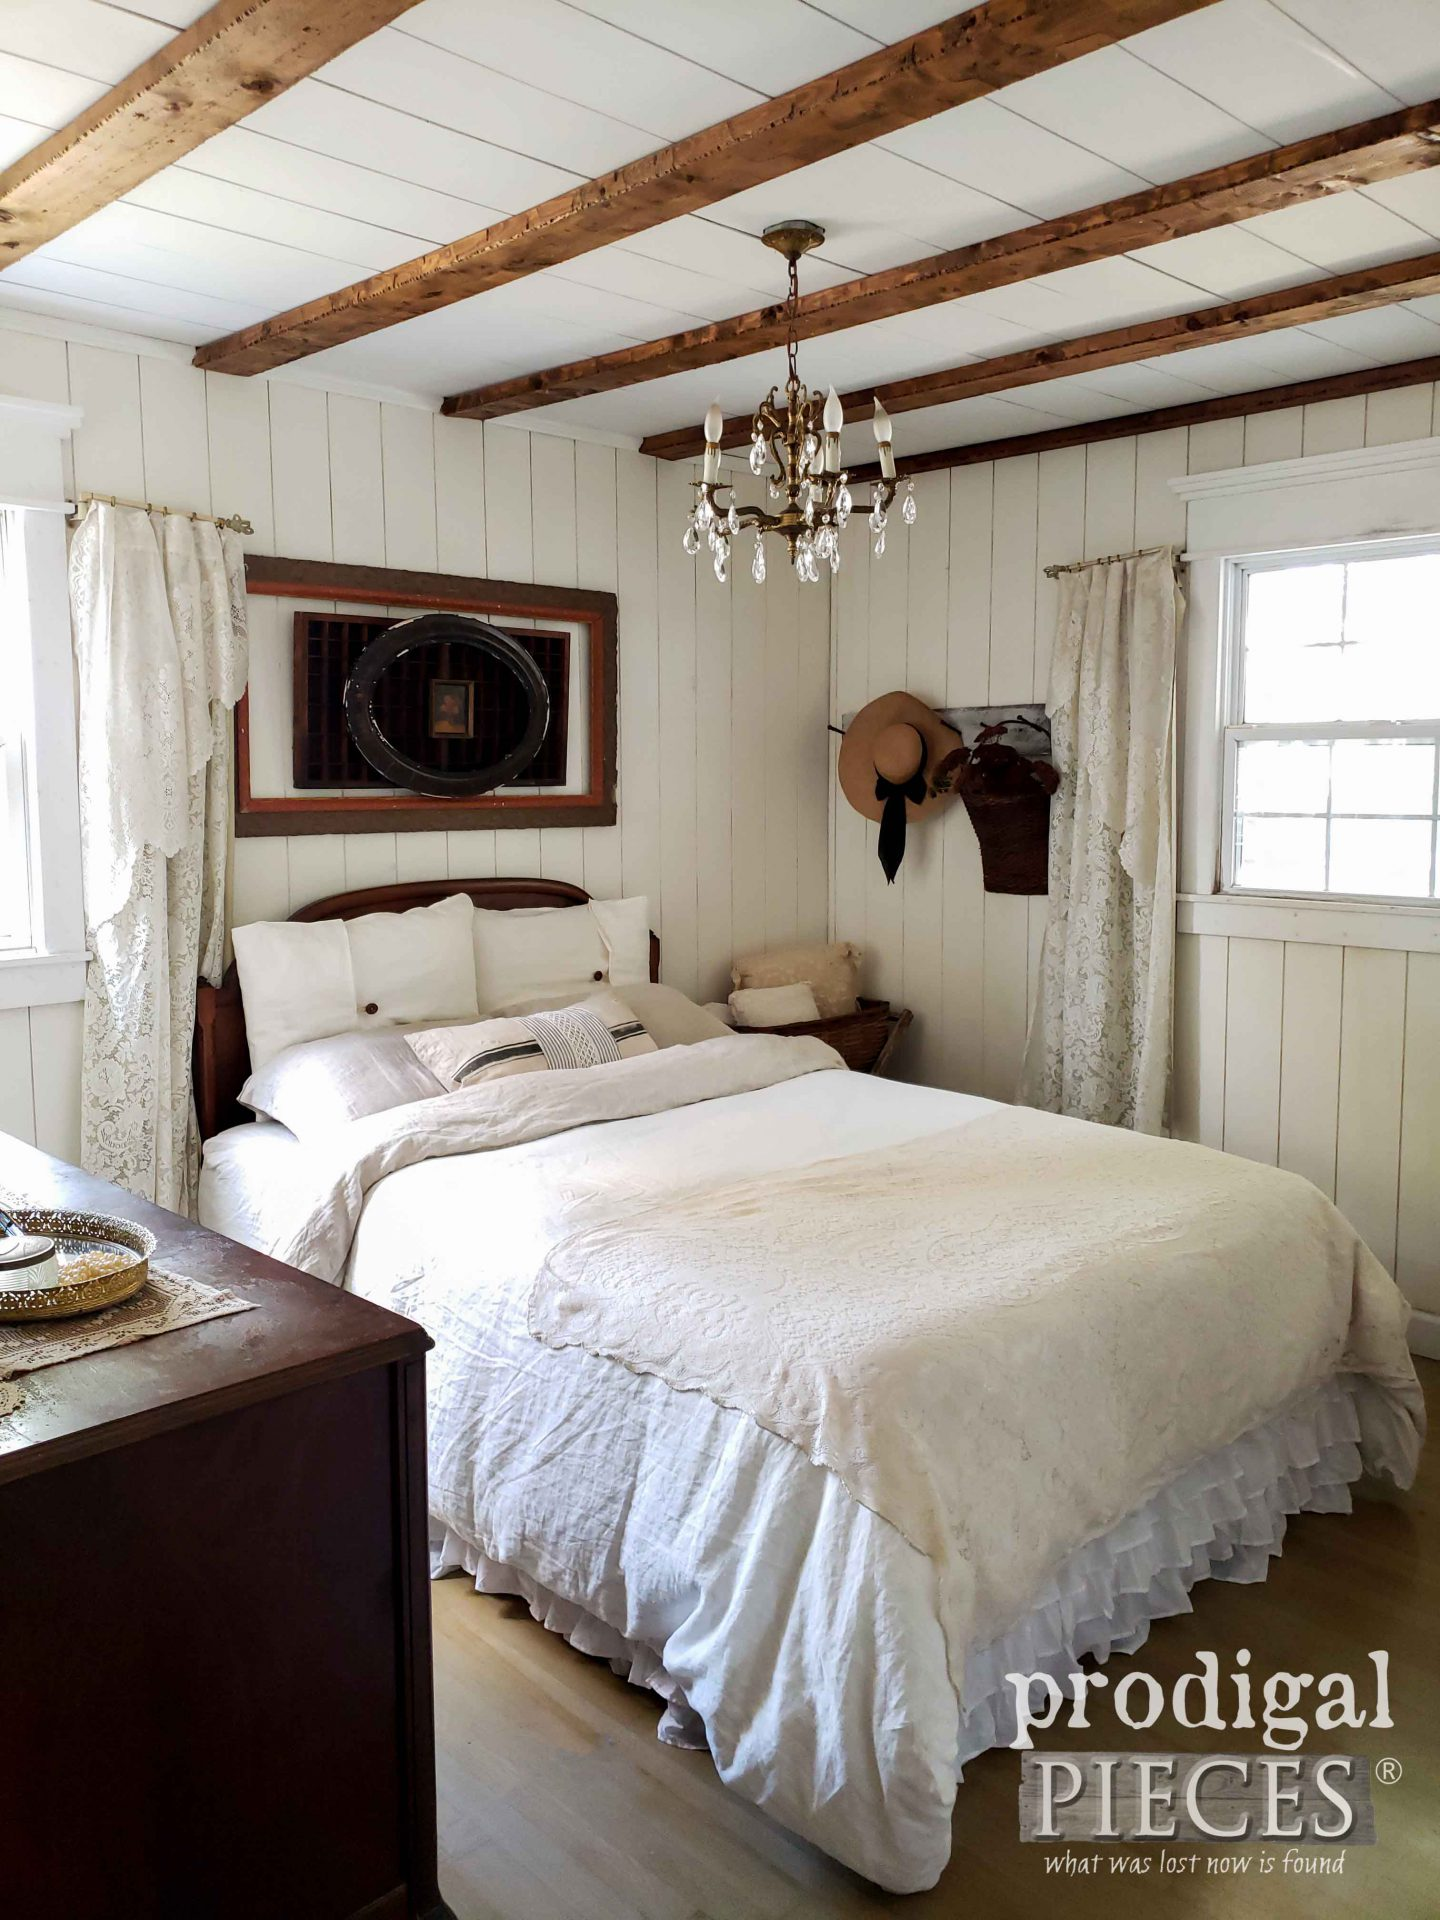 Minimalist Simple Farmhouse Fall Bedroom Decor with Antique Finds by Larissa of Prodigal Pieces | prodigalpieces.com #prodigalpieces #farmhouse #bedroom #home #homedecor #fall